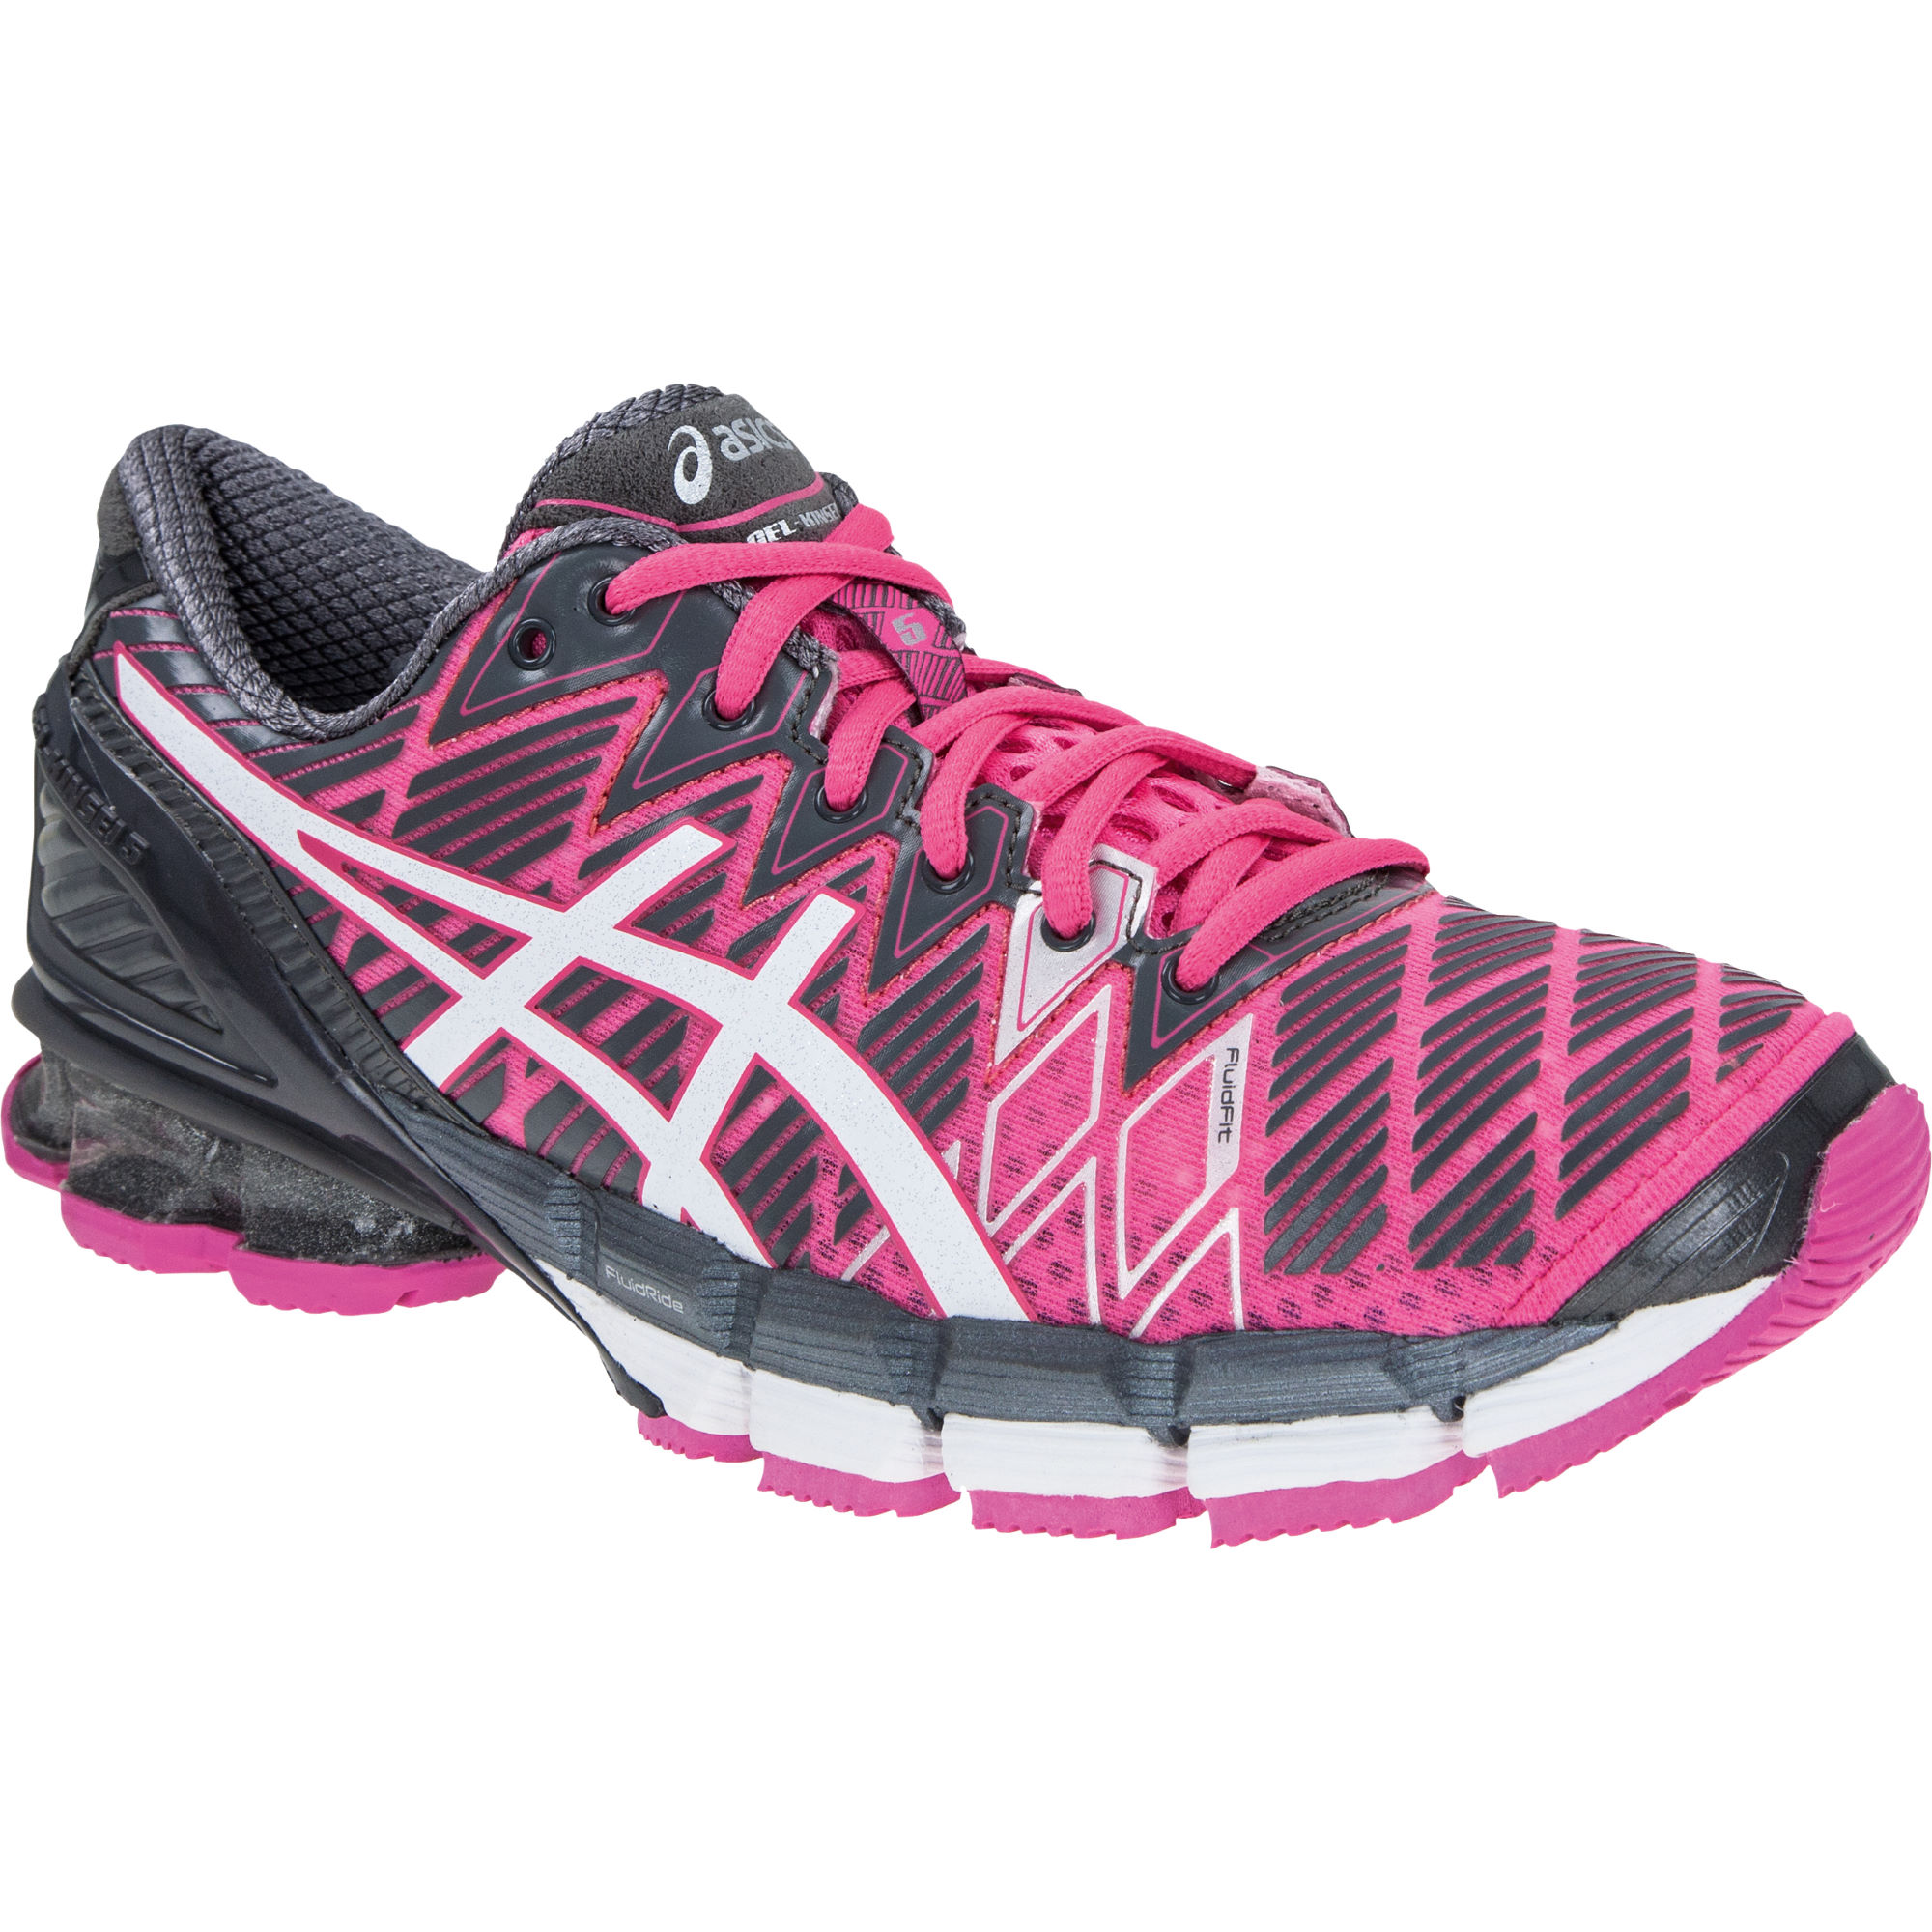 wiggle asics women 39 s gel kinsei 5 shoes ss14 cushion running shoes. Black Bedroom Furniture Sets. Home Design Ideas